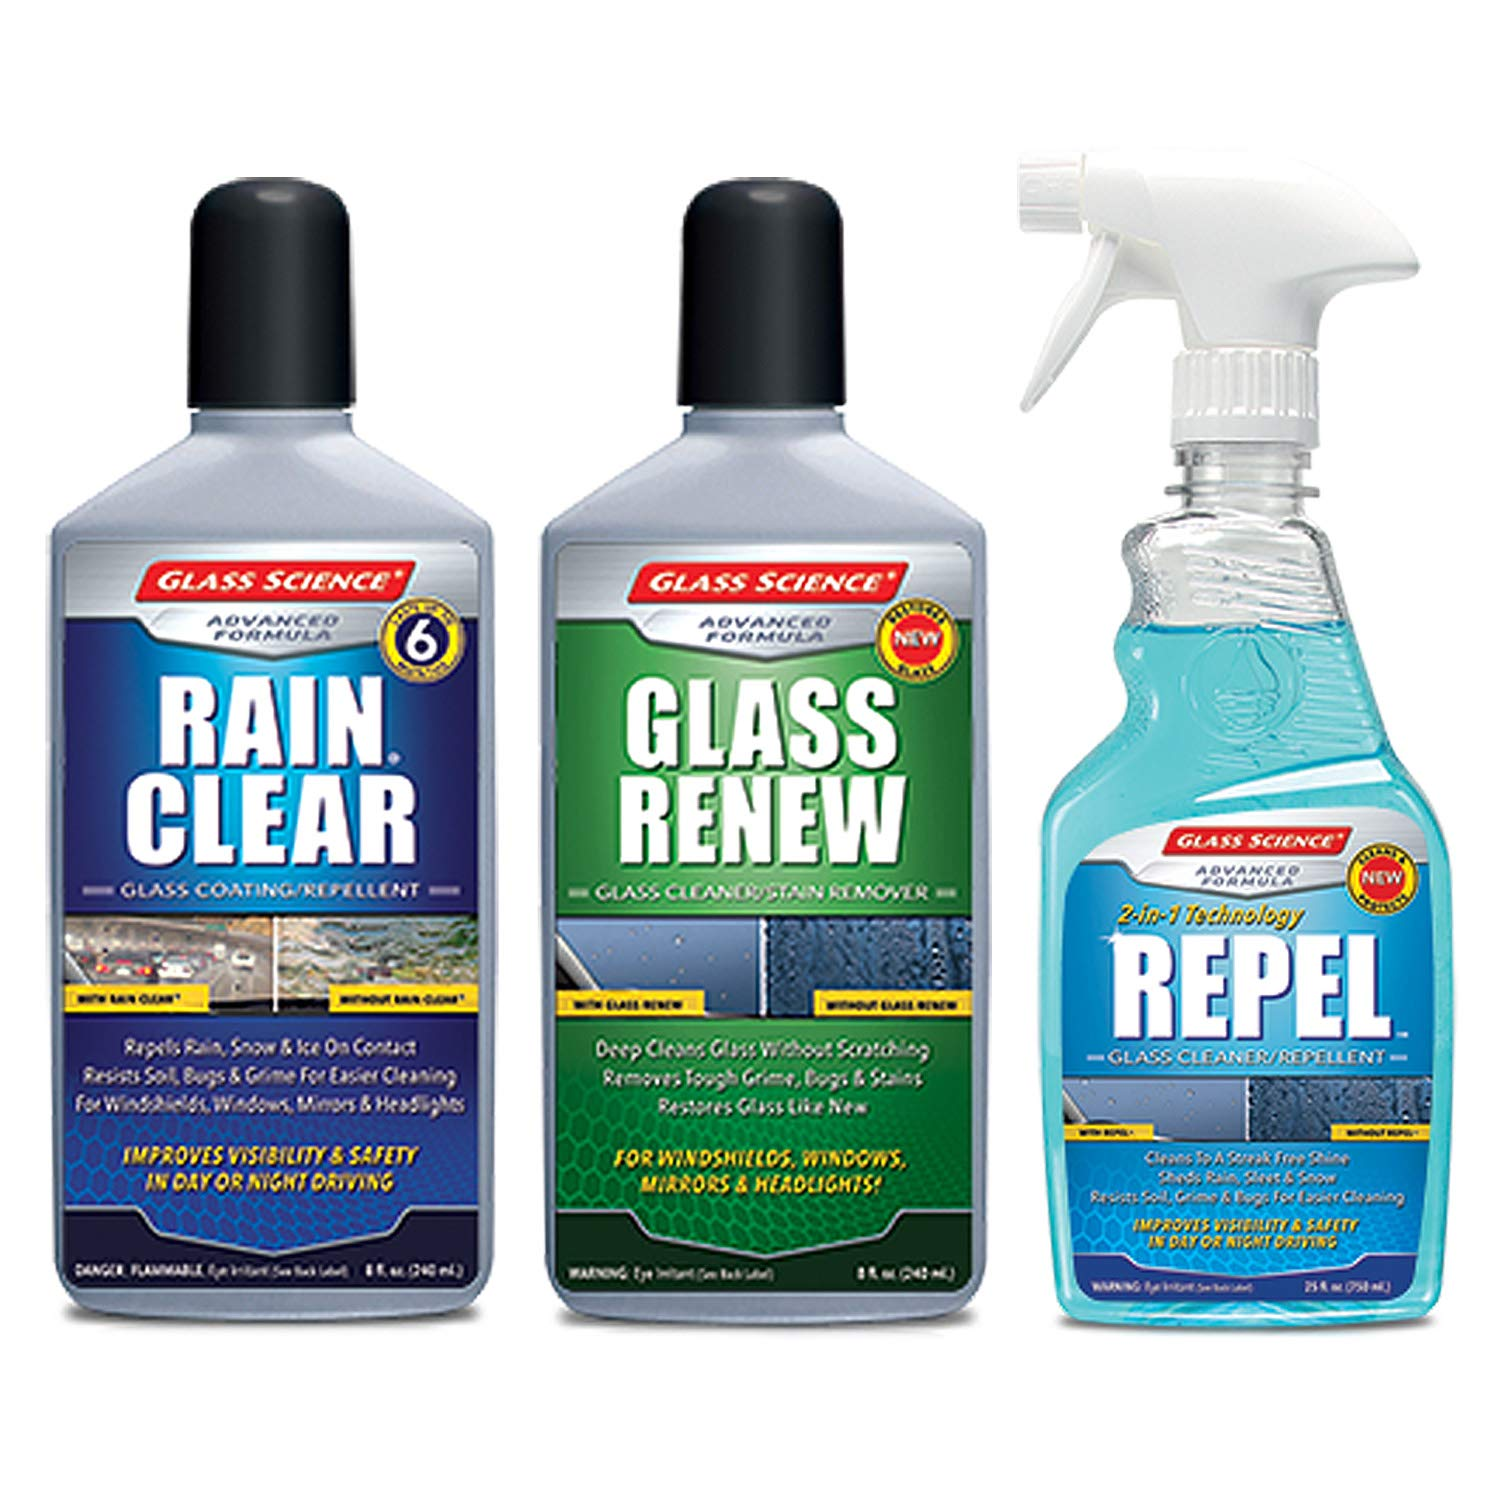 Rain Clear Water Repellent Auto Detailing Essentials 3 pack from Glass Science